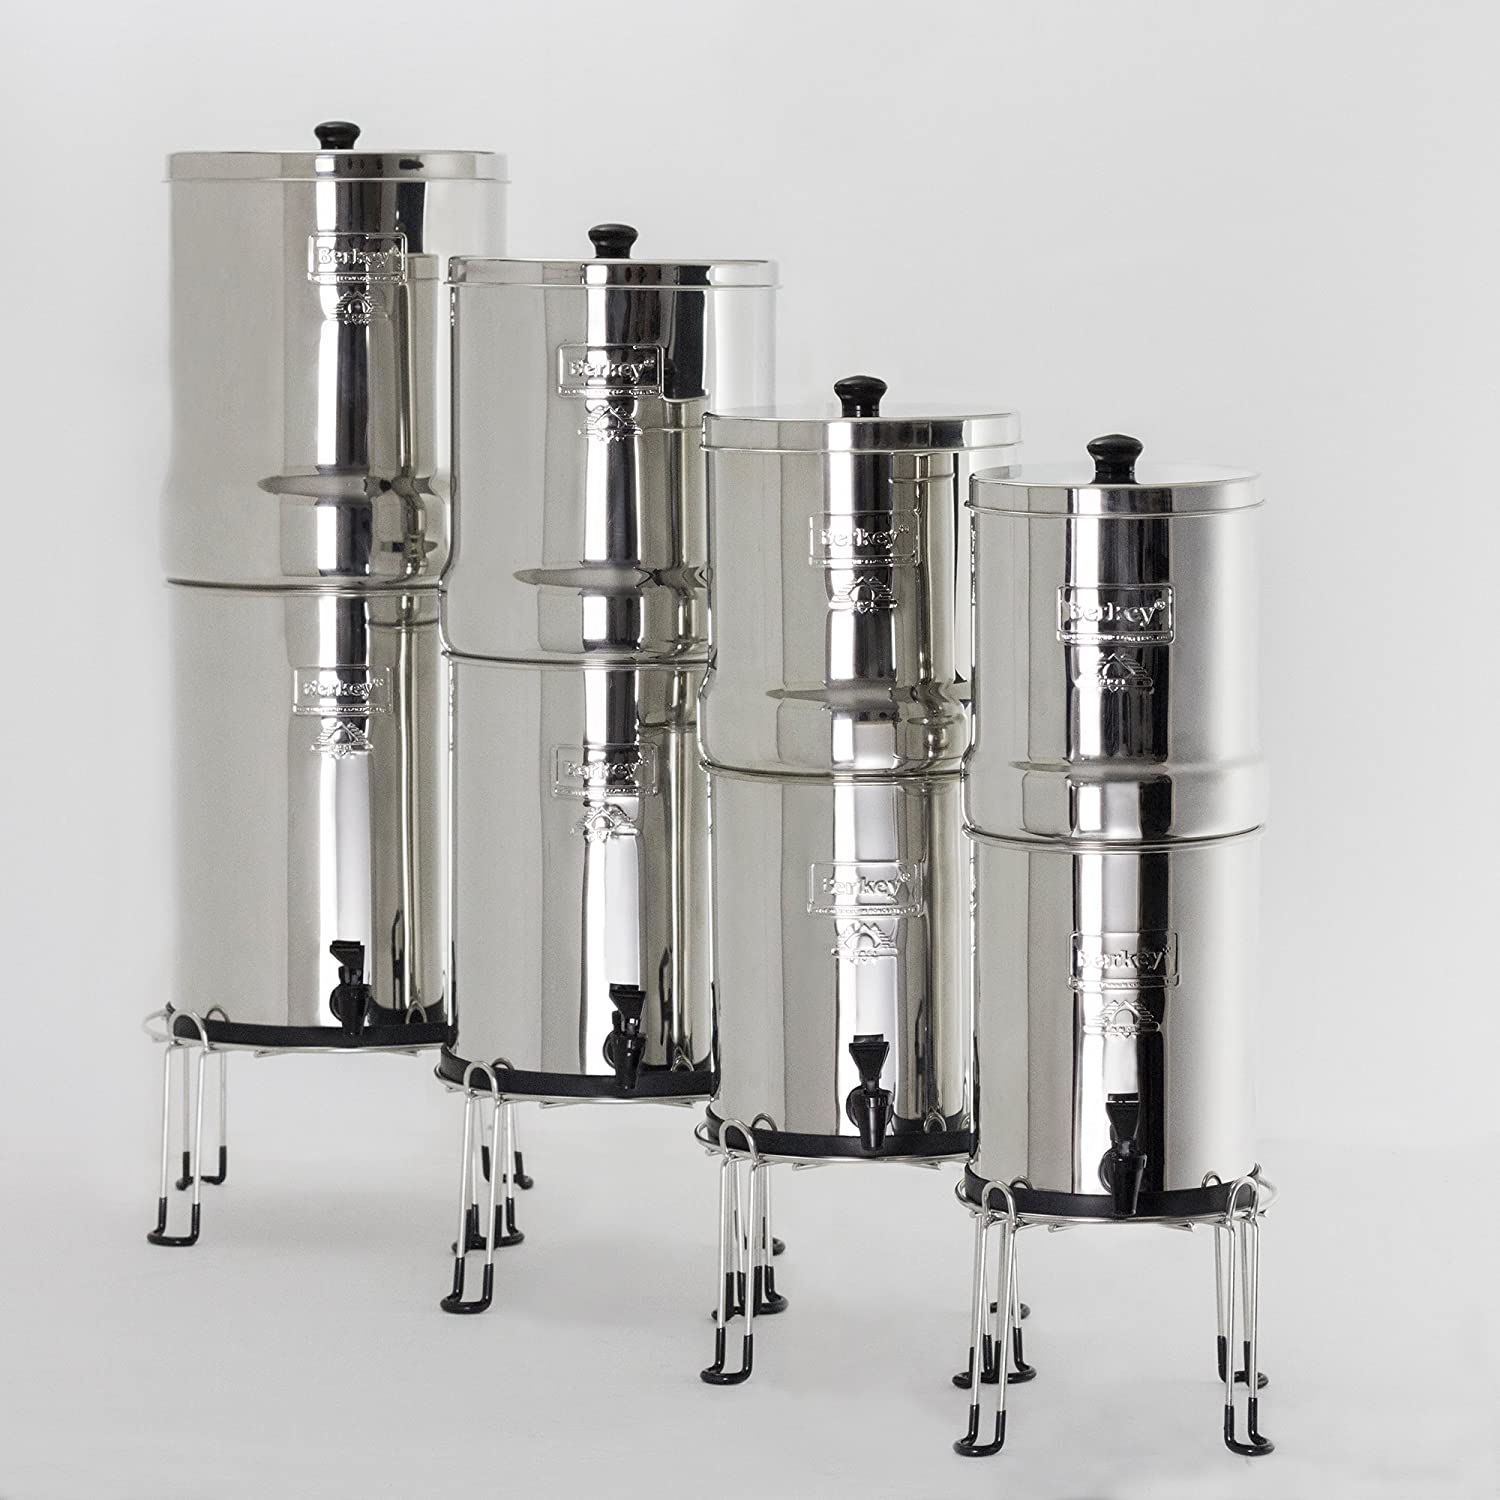 Berkey Water Filter Stainless Steel Wire Stand with Rubberized Non-Skid Feet for Travel and Other Small Sized Gravity Fed Water Filters Raises Your 6 inches